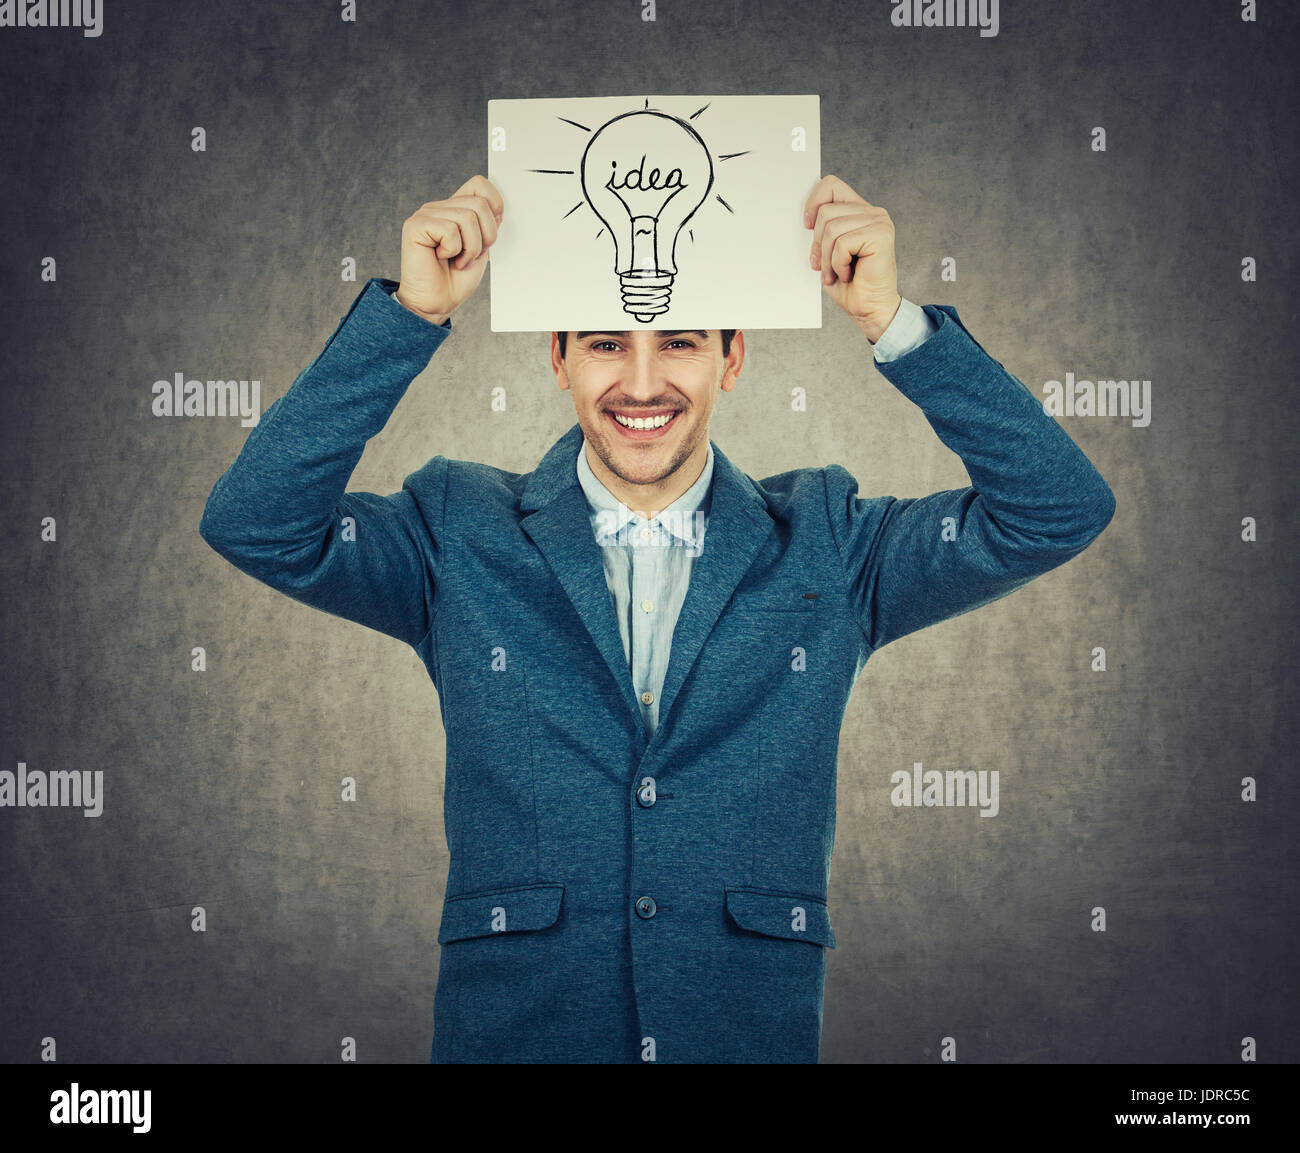 Smiling businessman or teacher holding a white paper above his head with a light bulb sketch. Science and business - Stock Image